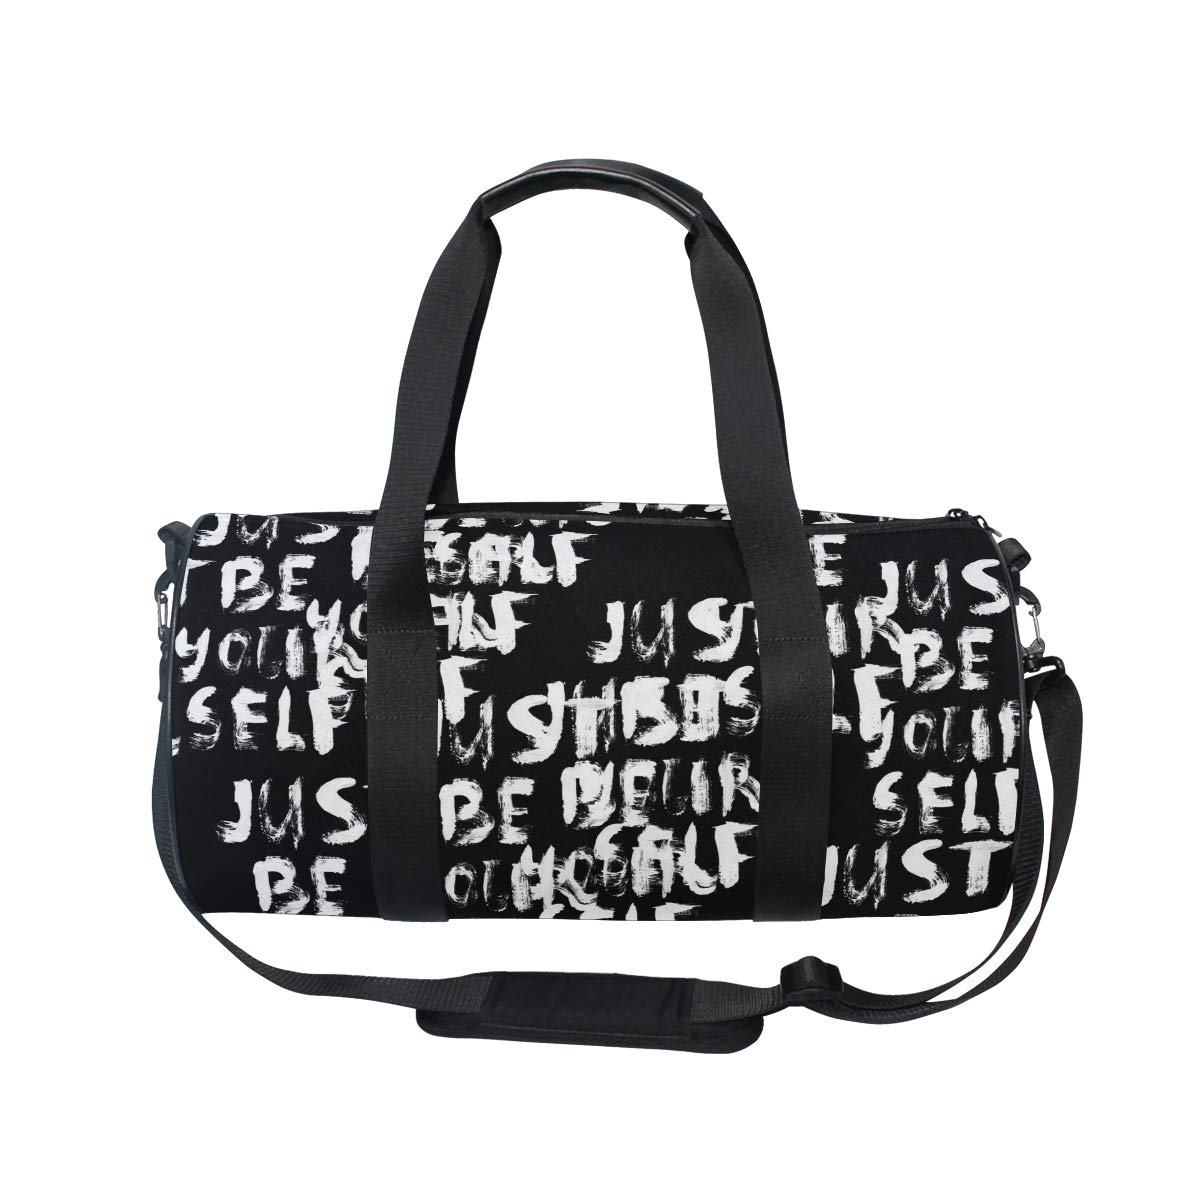 WIHVE Gym Duffel Bag Black White Crayon Letters Sports Lightweight Canvas Travel Luggage Bag